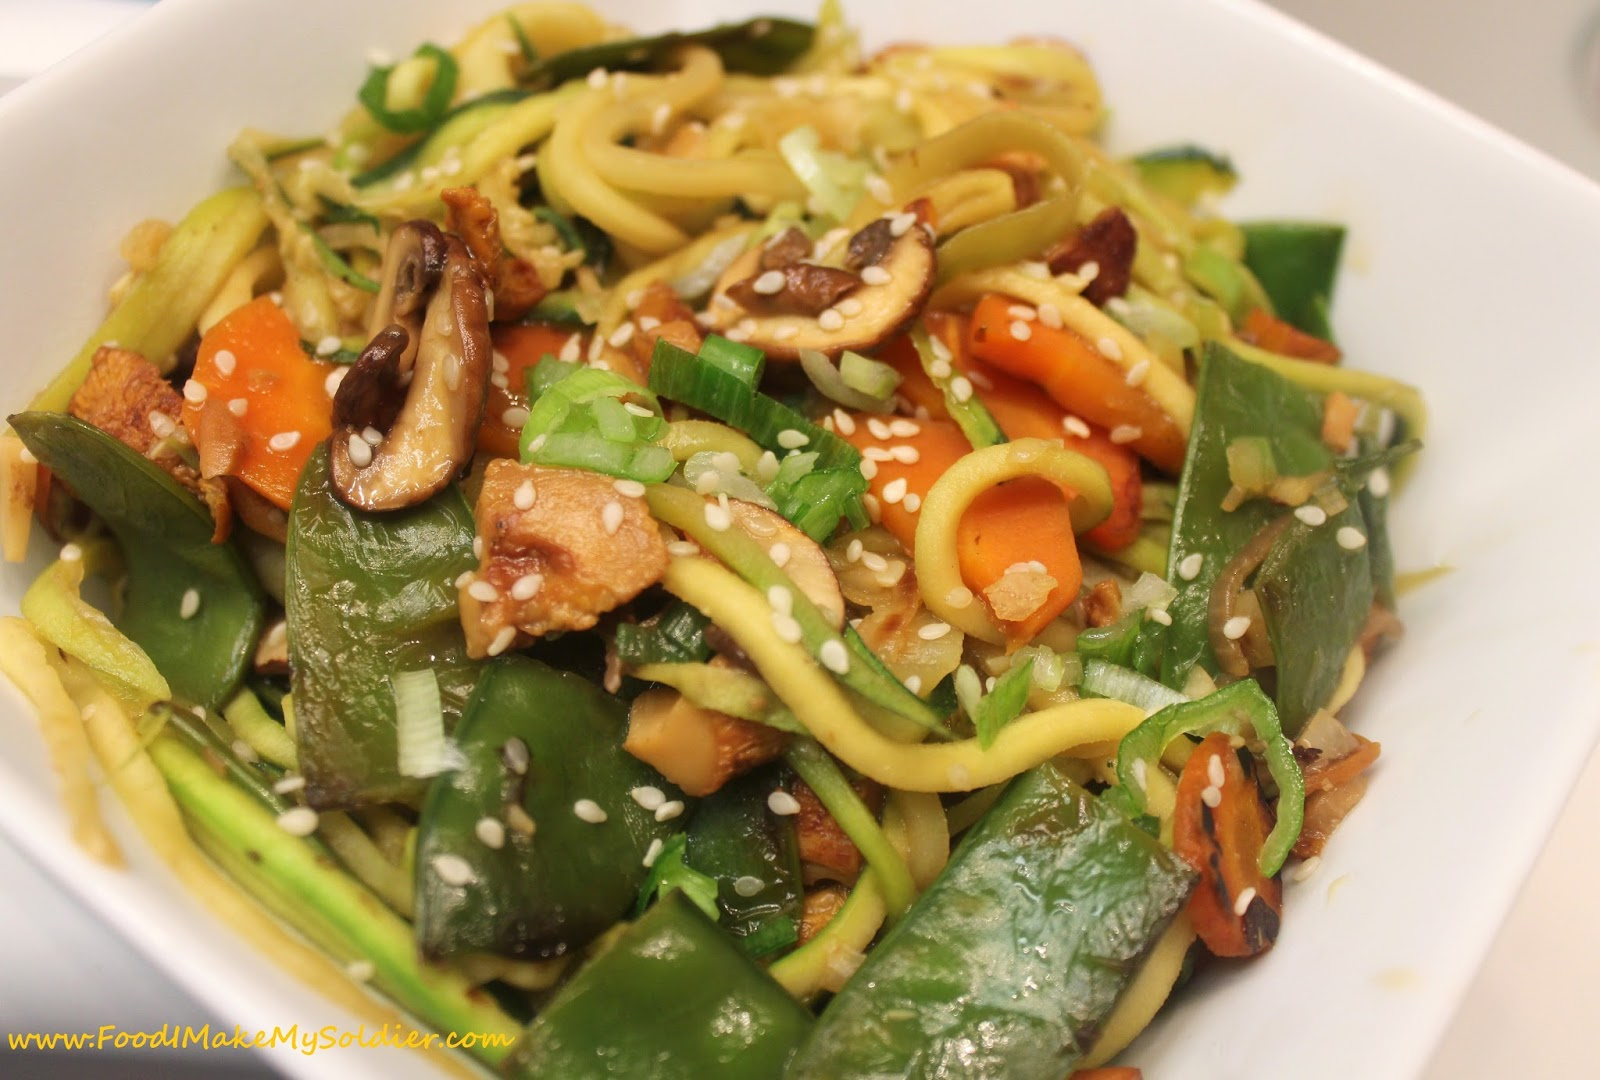 Food I Make My Soldier: Zucchini and Vegetable Lo Mein